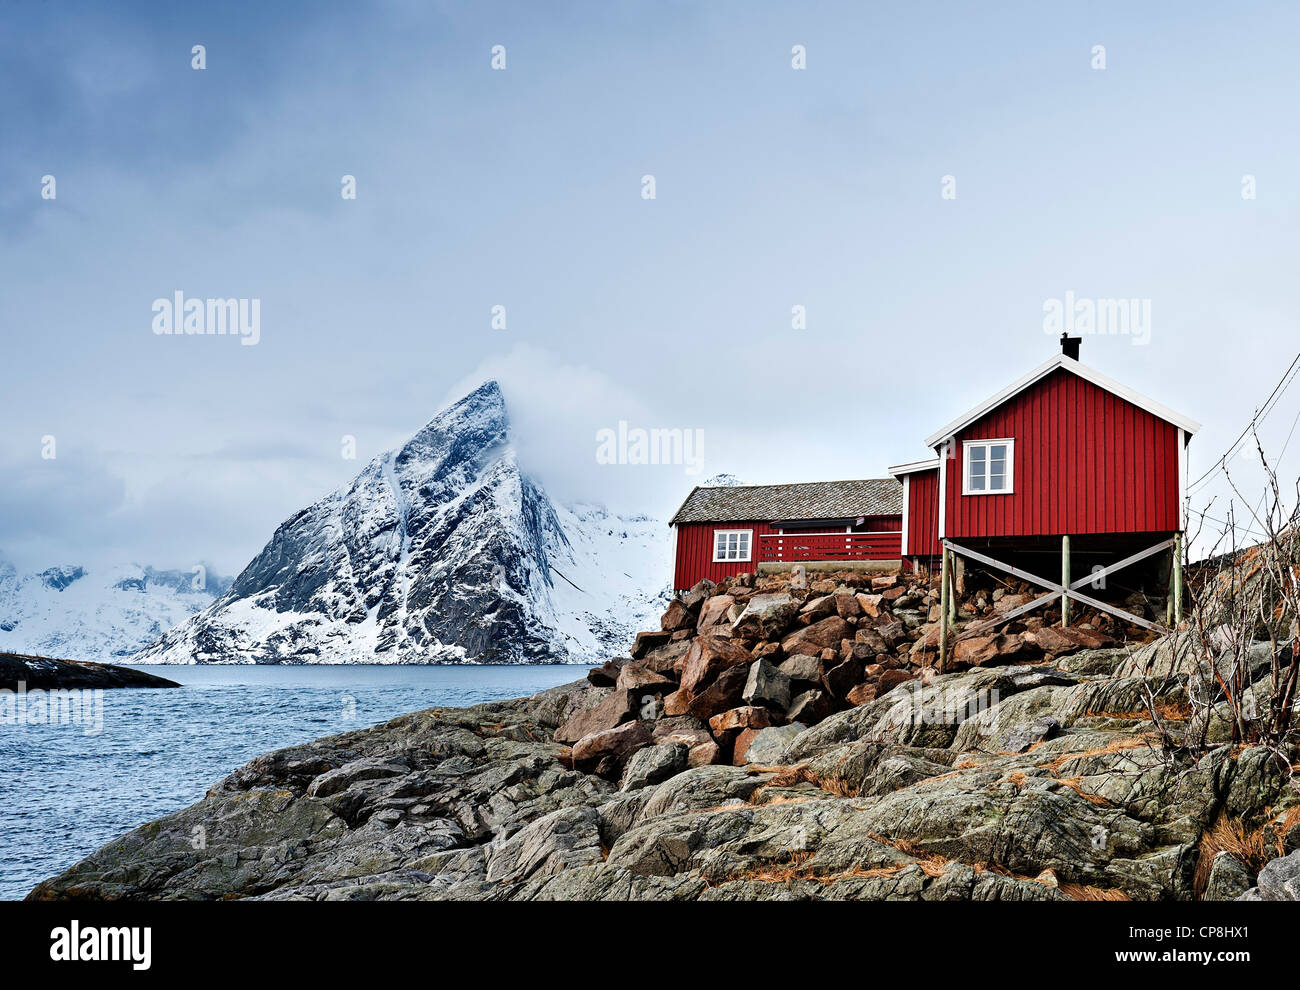 A Rorbu (Fishermen's hut, now used as holiday accommodation) at Hamnoy with Olstind mountain in the background - Stock Image